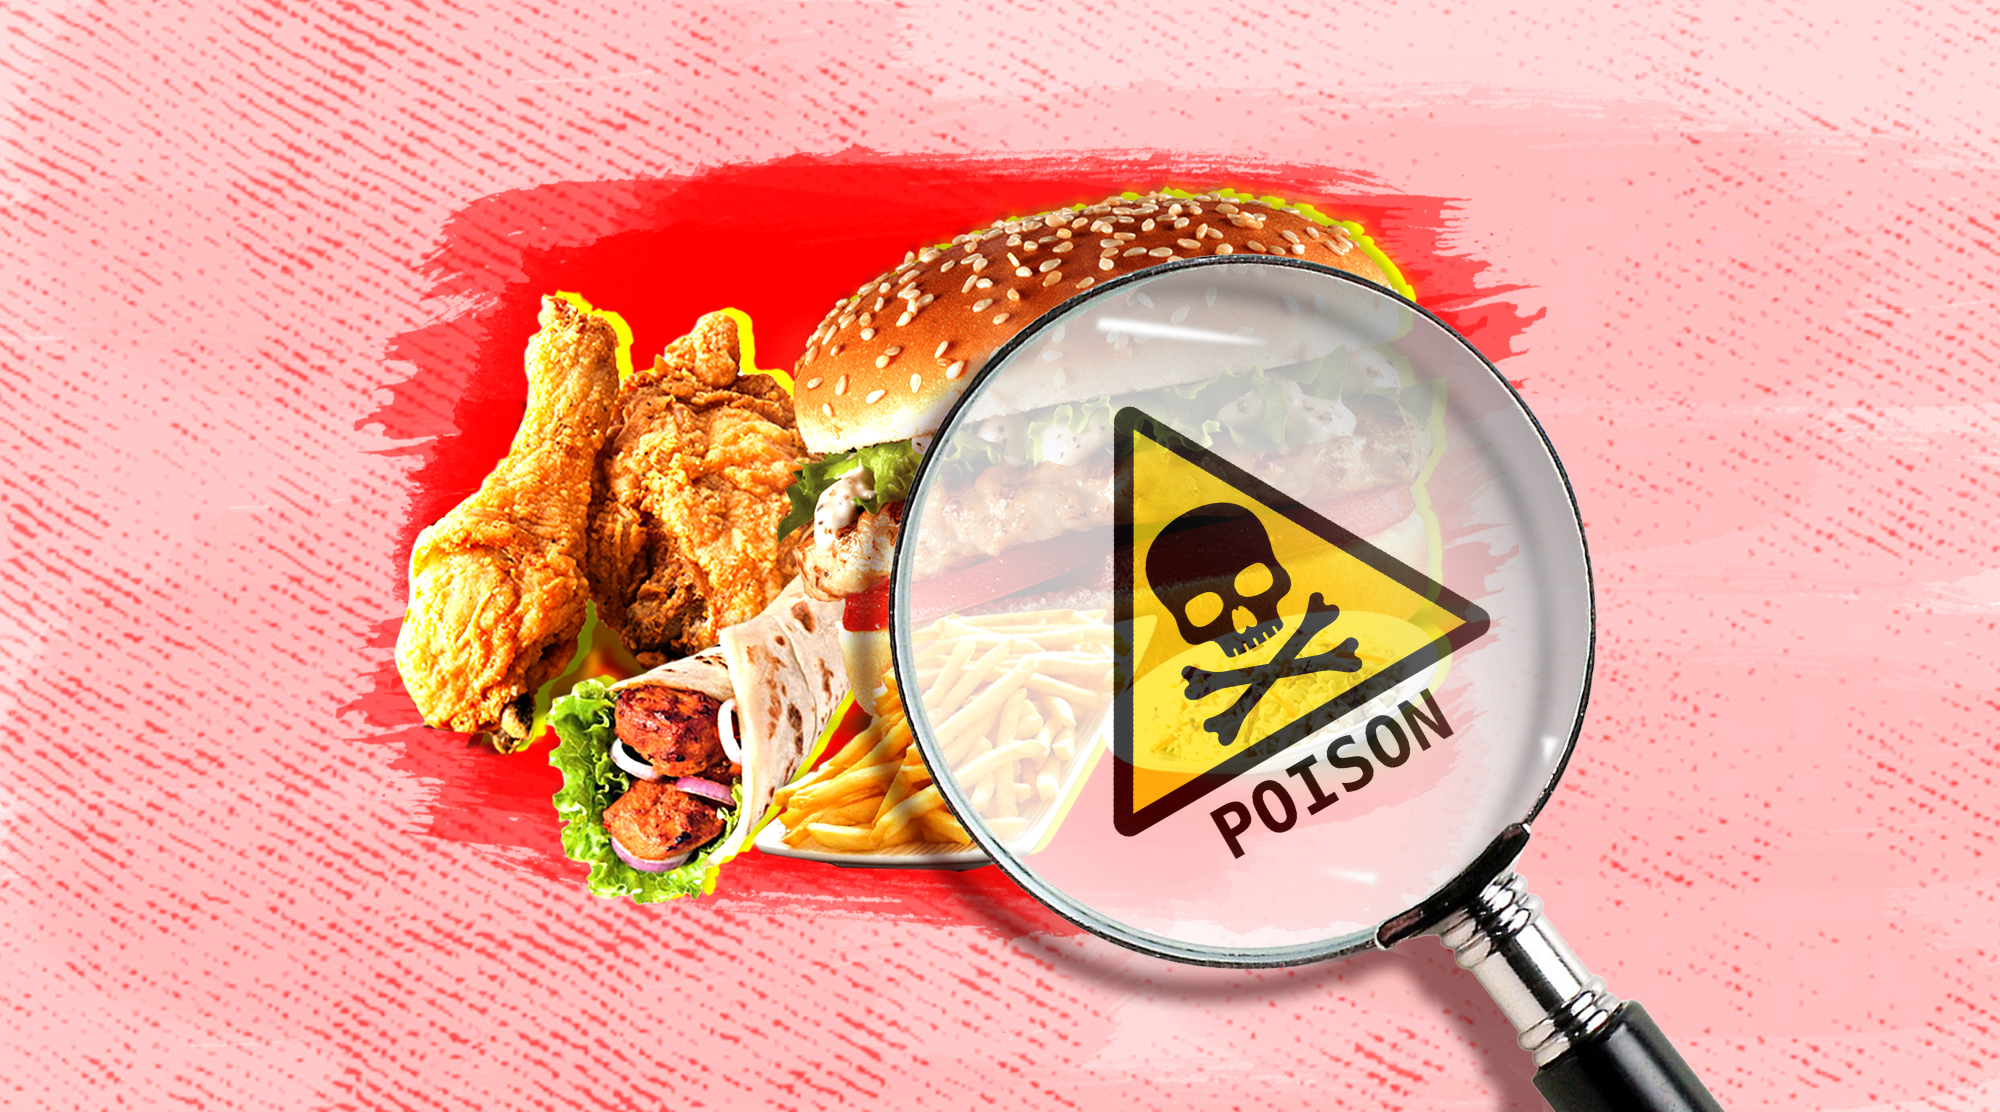 Image contains magnifying glass inspecting fast food and a poison symbol